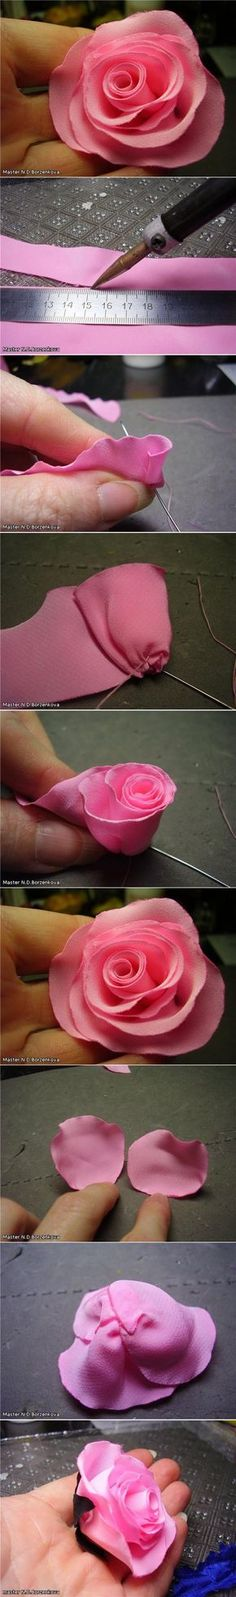 DIY Small Pink Fabric Rose is part of Silk Fabric crafts - You will love making this rose from fabric that you have You will Ribbon Art, Fabric Ribbon, Ribbon Crafts, Pink Fabric, Flower Crafts, Fabric Crafts, Sewing Crafts, Ribbon Rose, Diy Ribbon